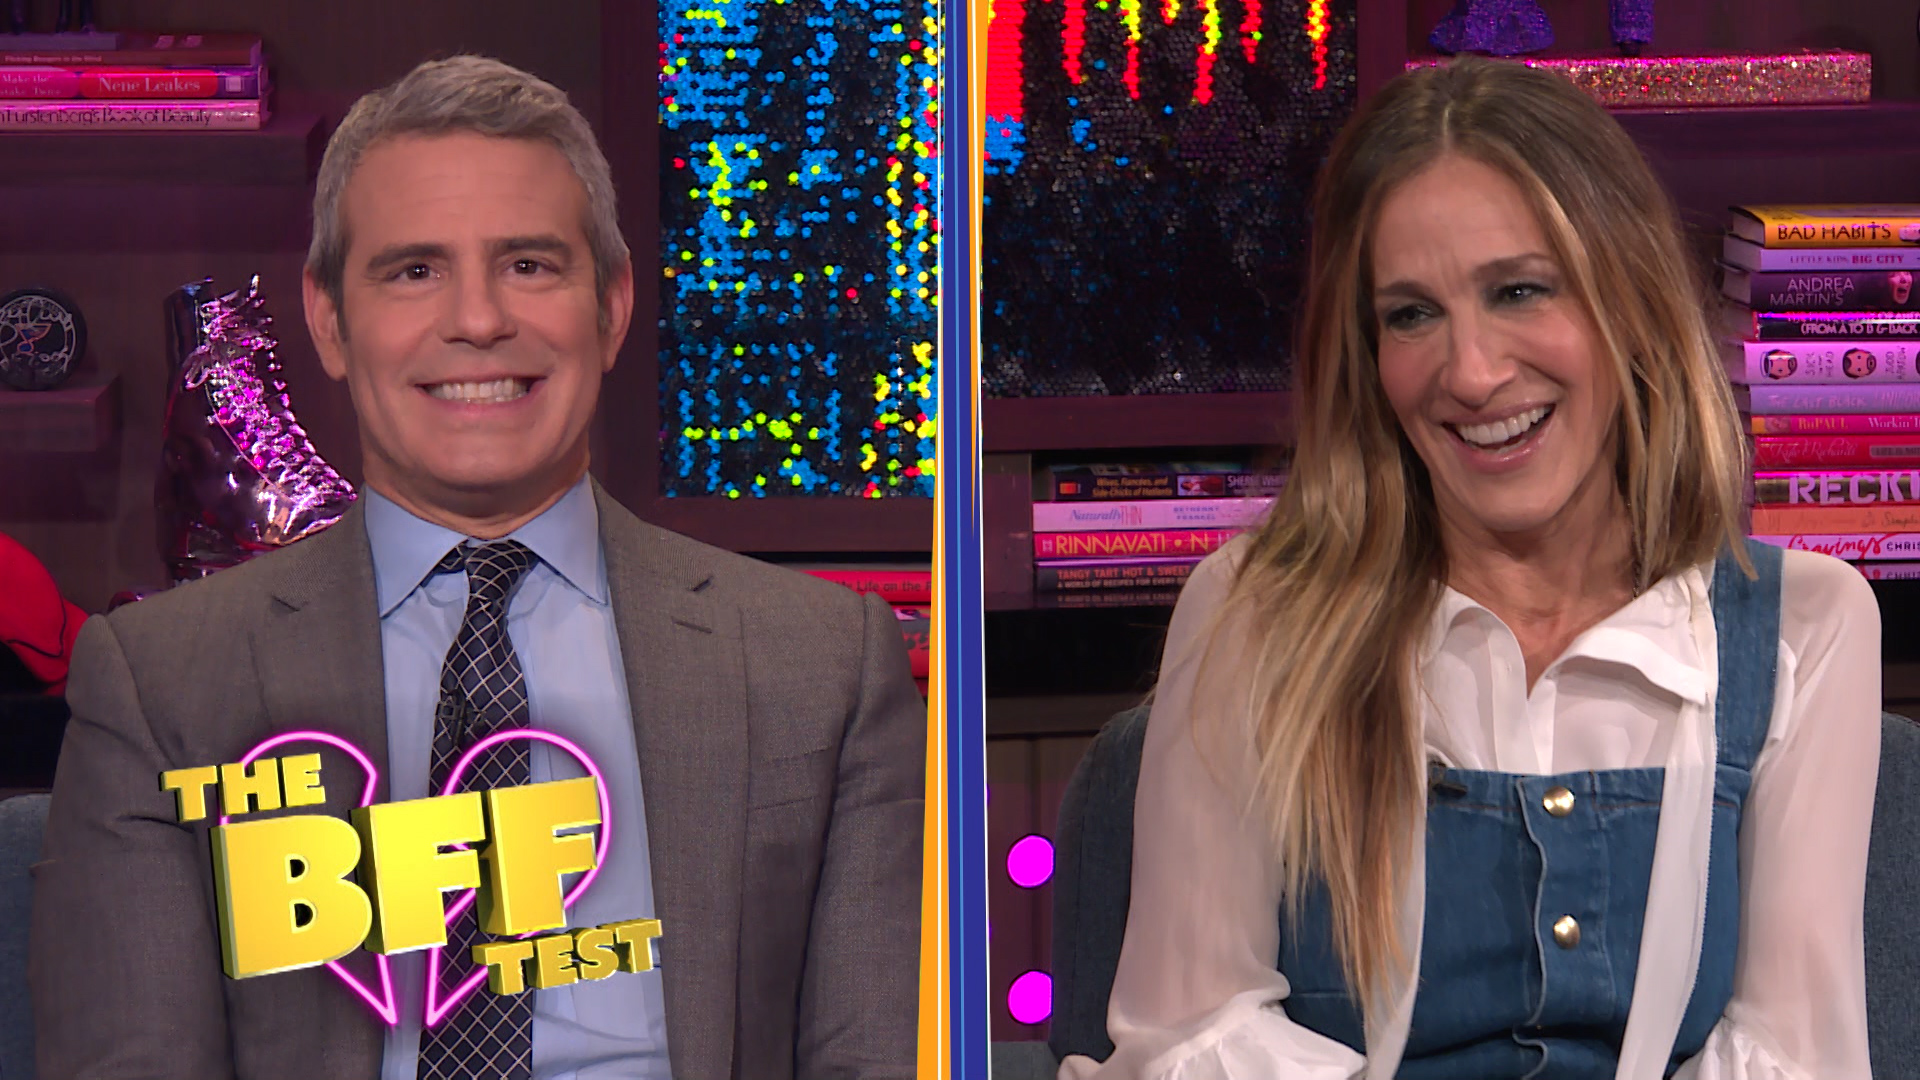 Sarah Jessica Parker, NeNe Leakes, and Kim Zolciak-Biermann All Have One Thing in Common